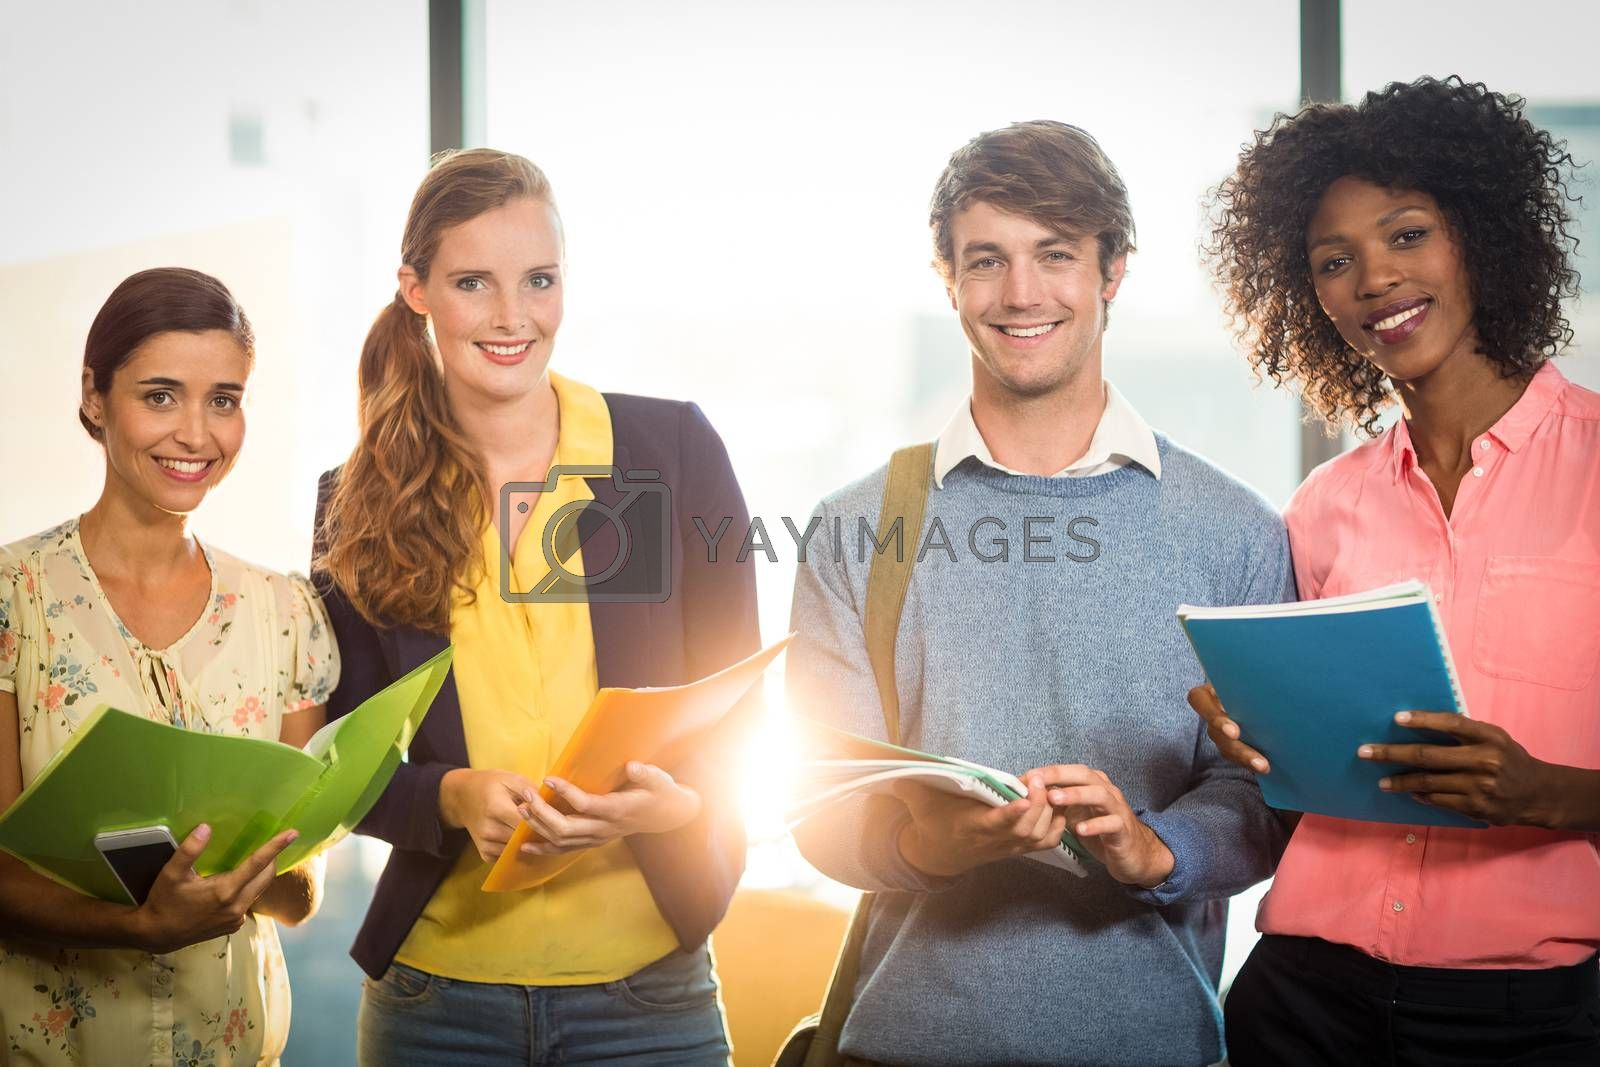 Business people holding files  by Wavebreakmedia